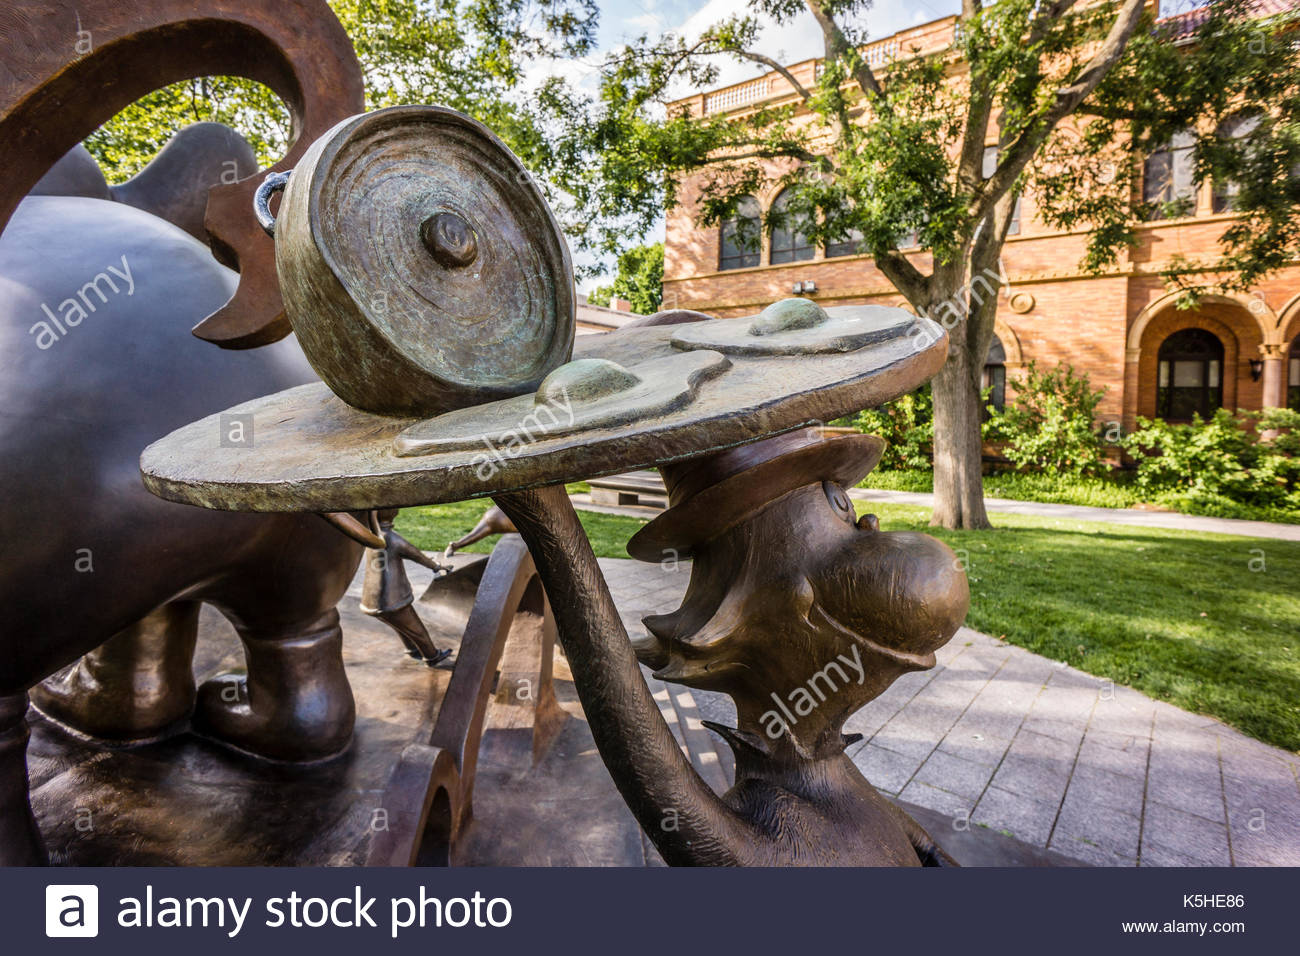 Theodor Seuss Geisel Stock Photos Theodor Seuss Geisel Stock Images Alamy